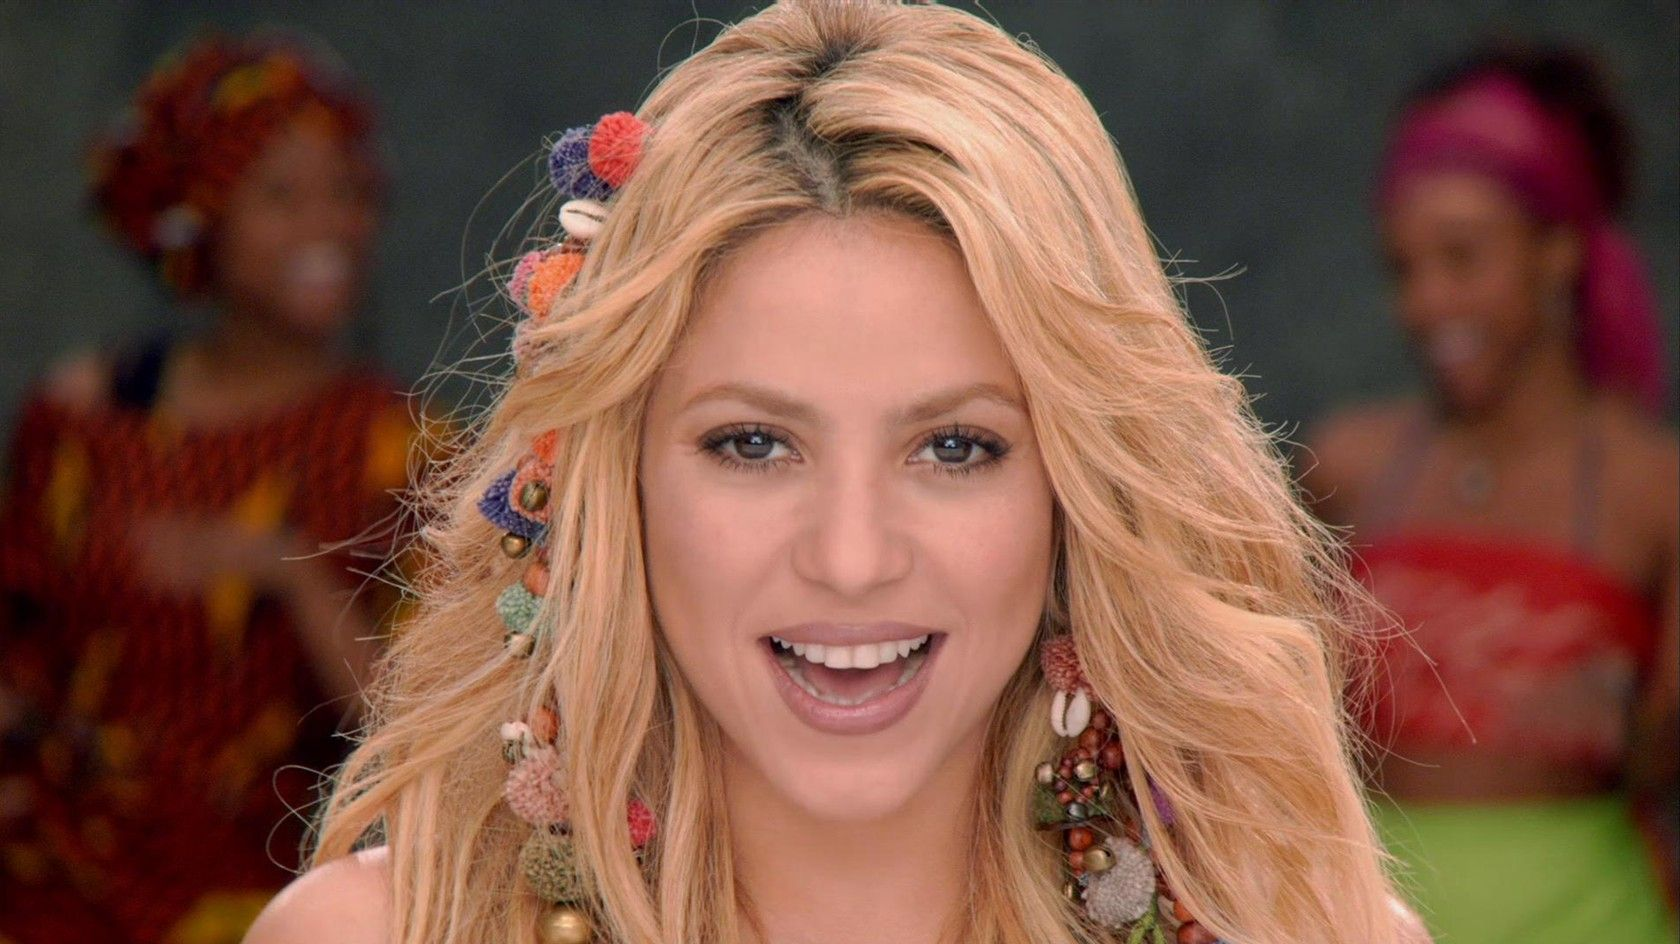 Pin By Analia Molina On Ecuador Time For Africa Shakira Music Videos Vevo